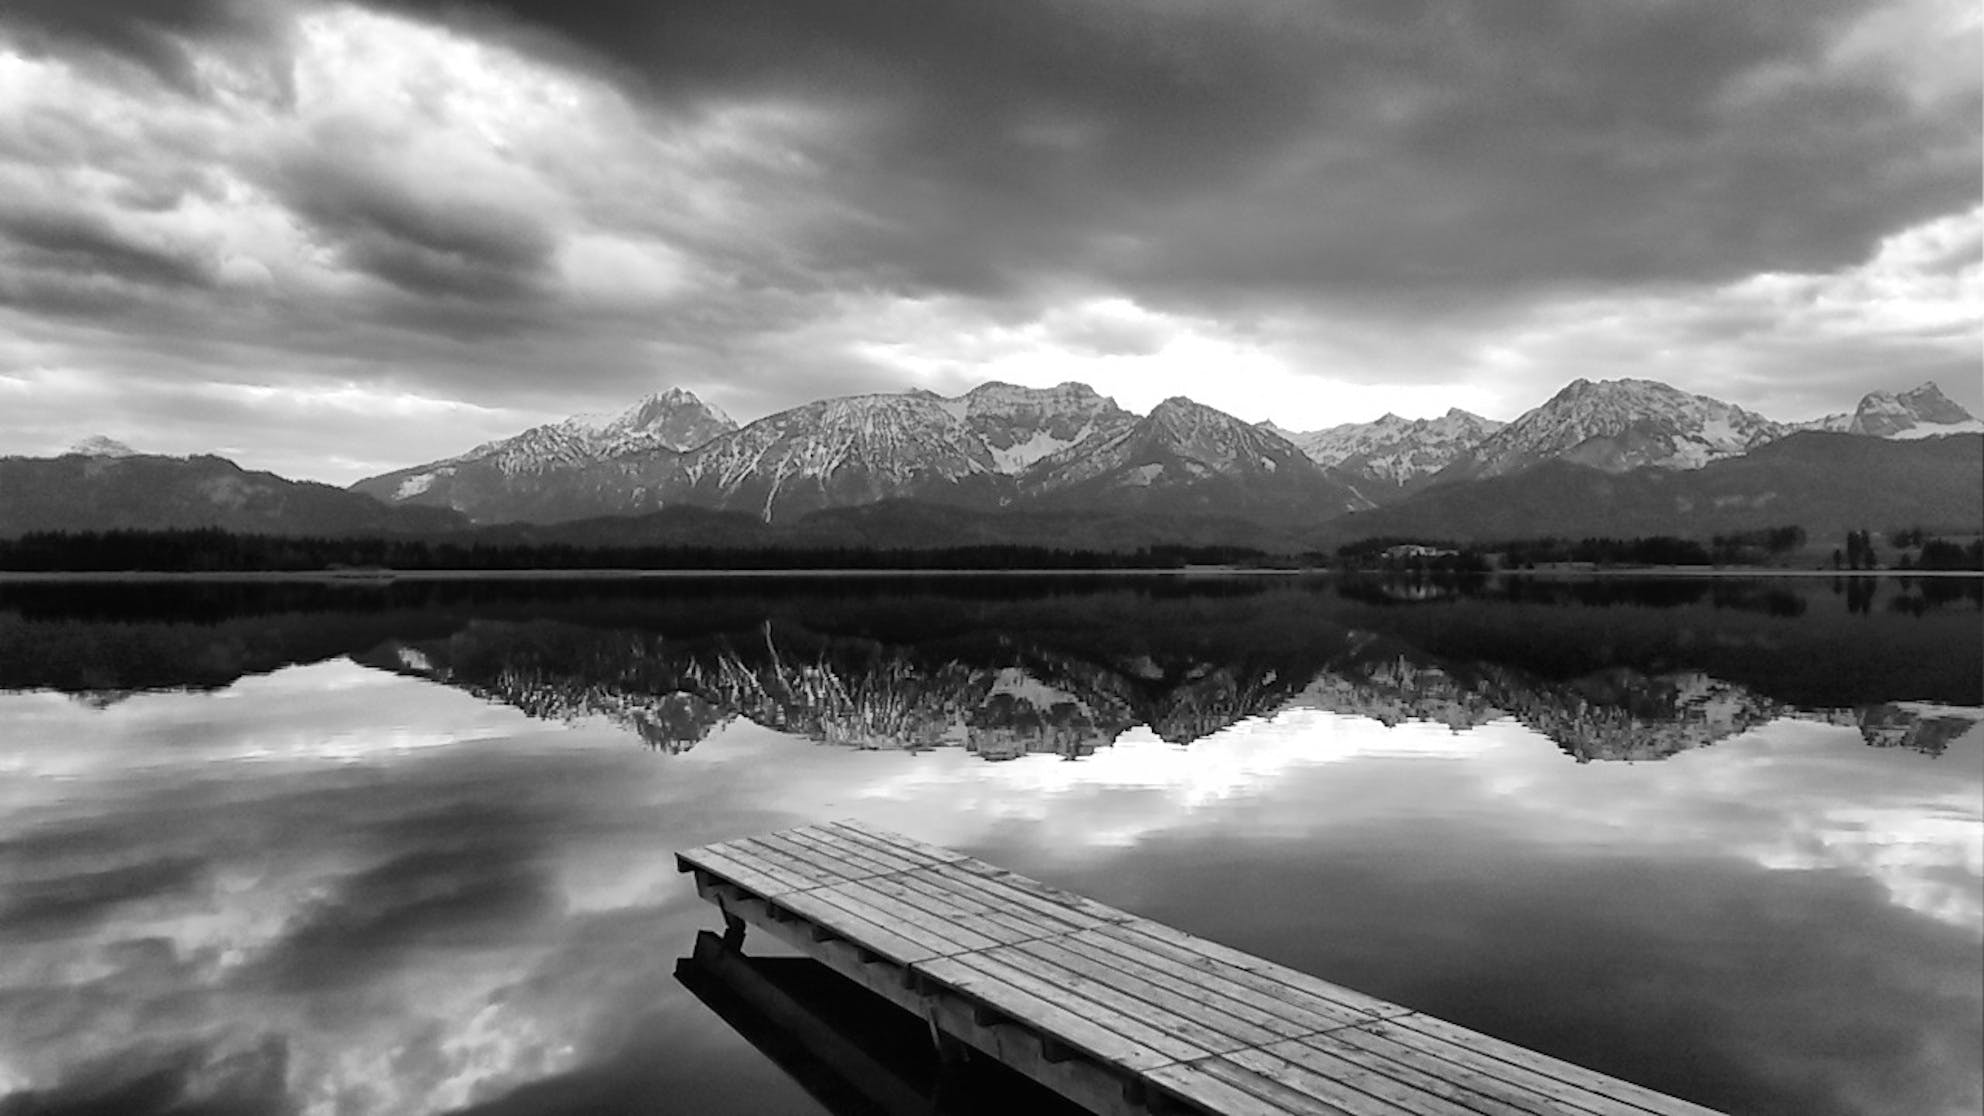 Gray Scale Photo of Body of Water